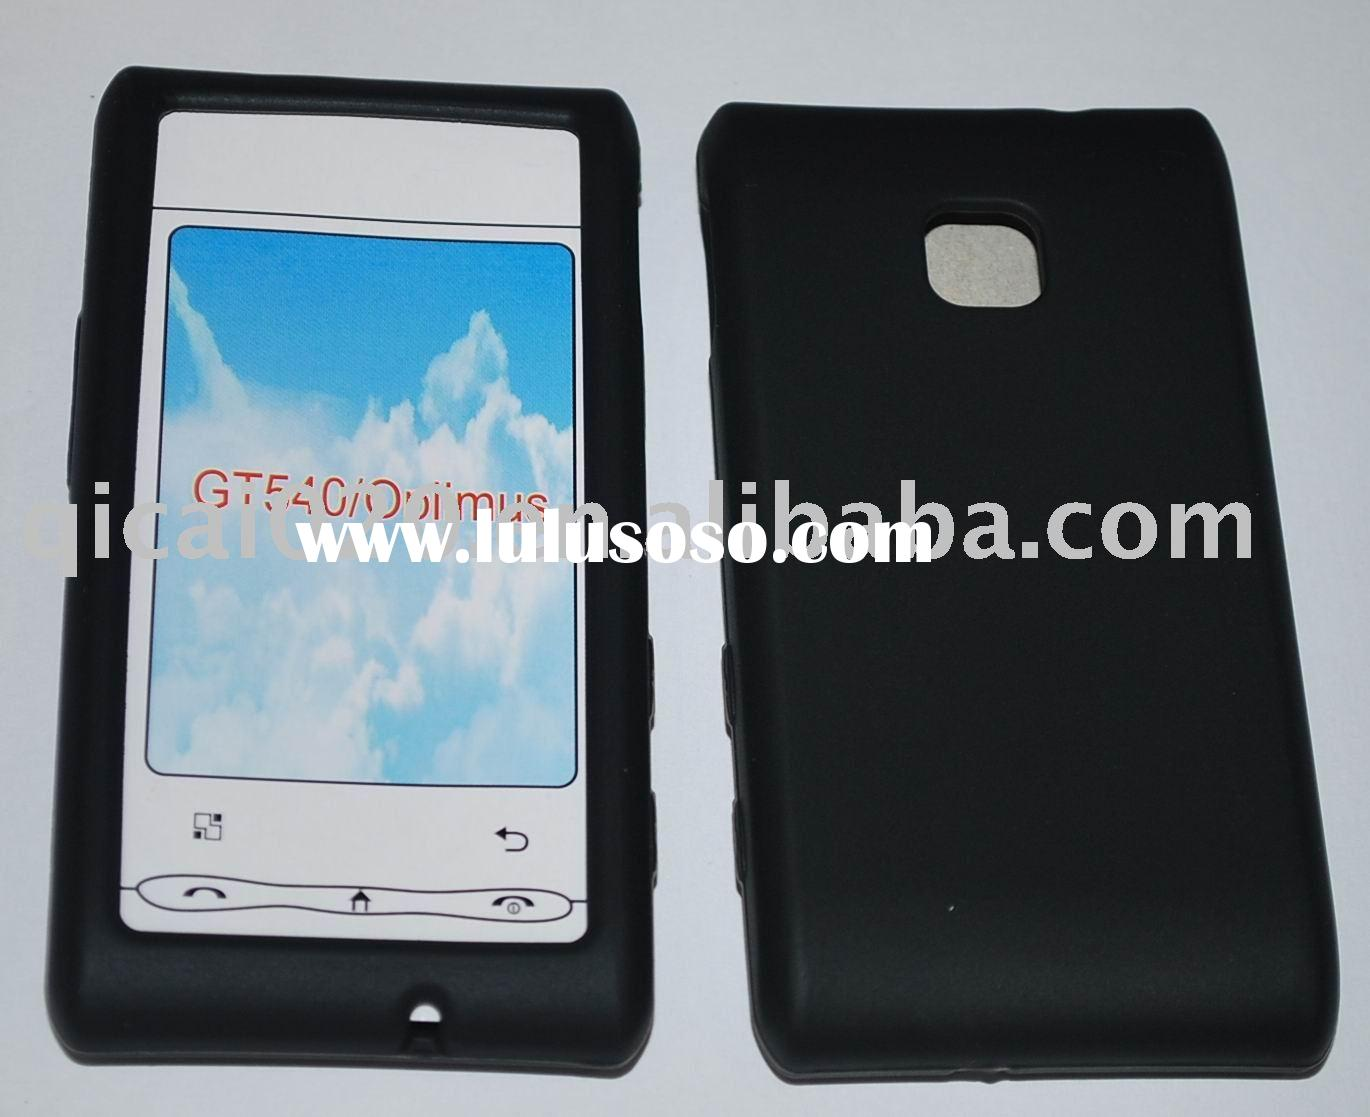 Mobile phone silicon case for LG GT540